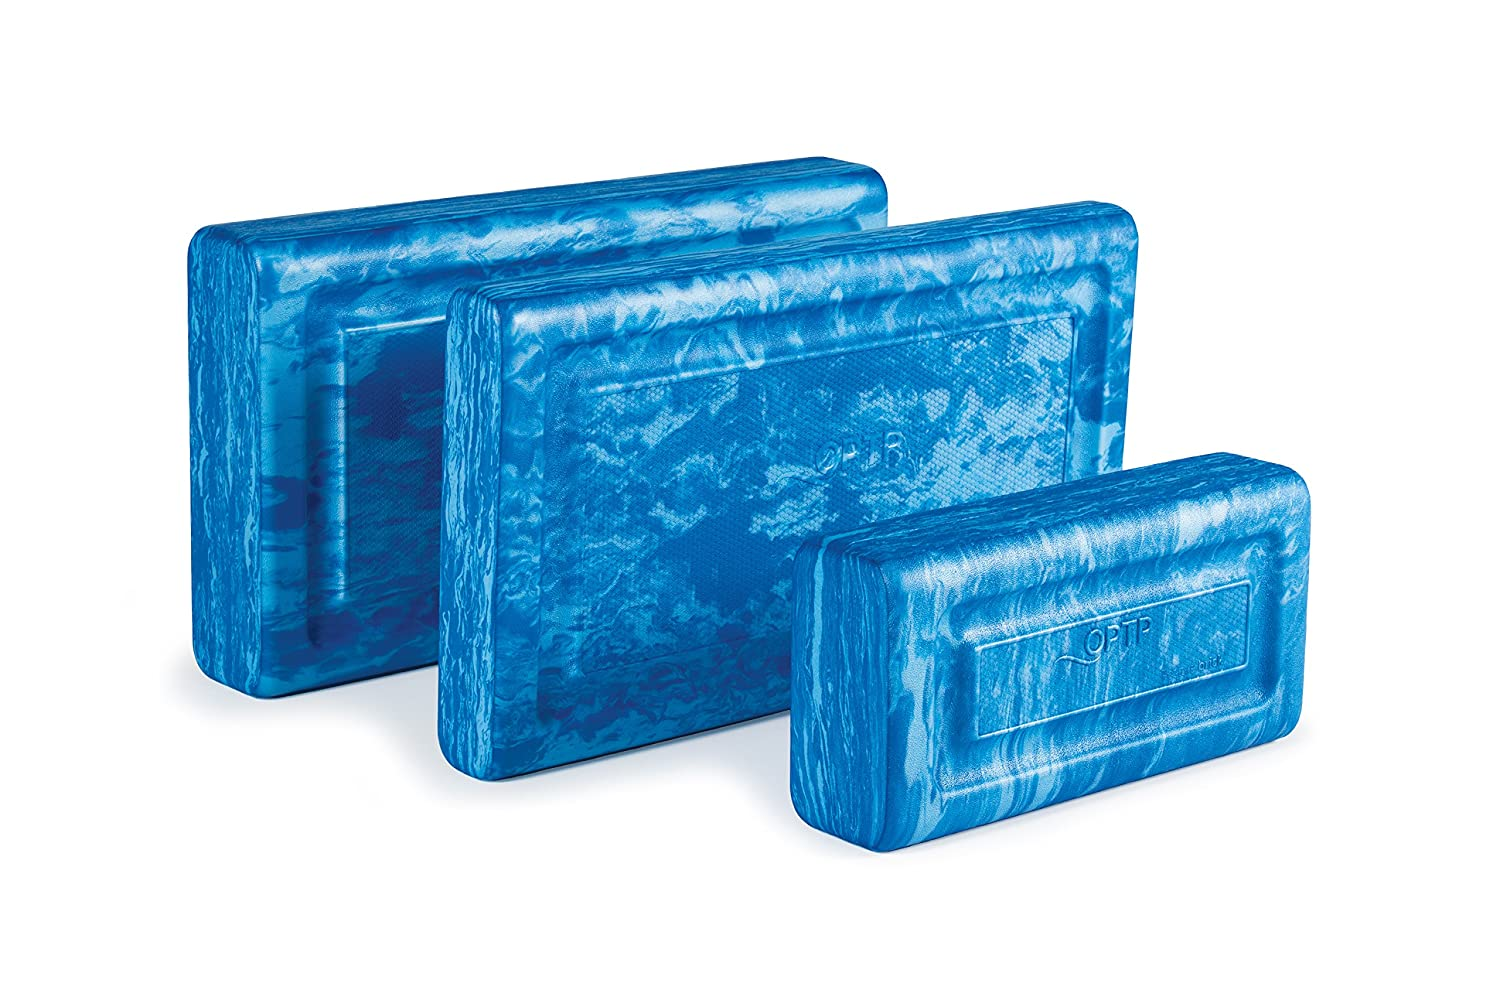 Pilates and Physical Therapy; 3 Size Options OPTP Posture Brick Foam Blocks for Positioning and Support in Yoga